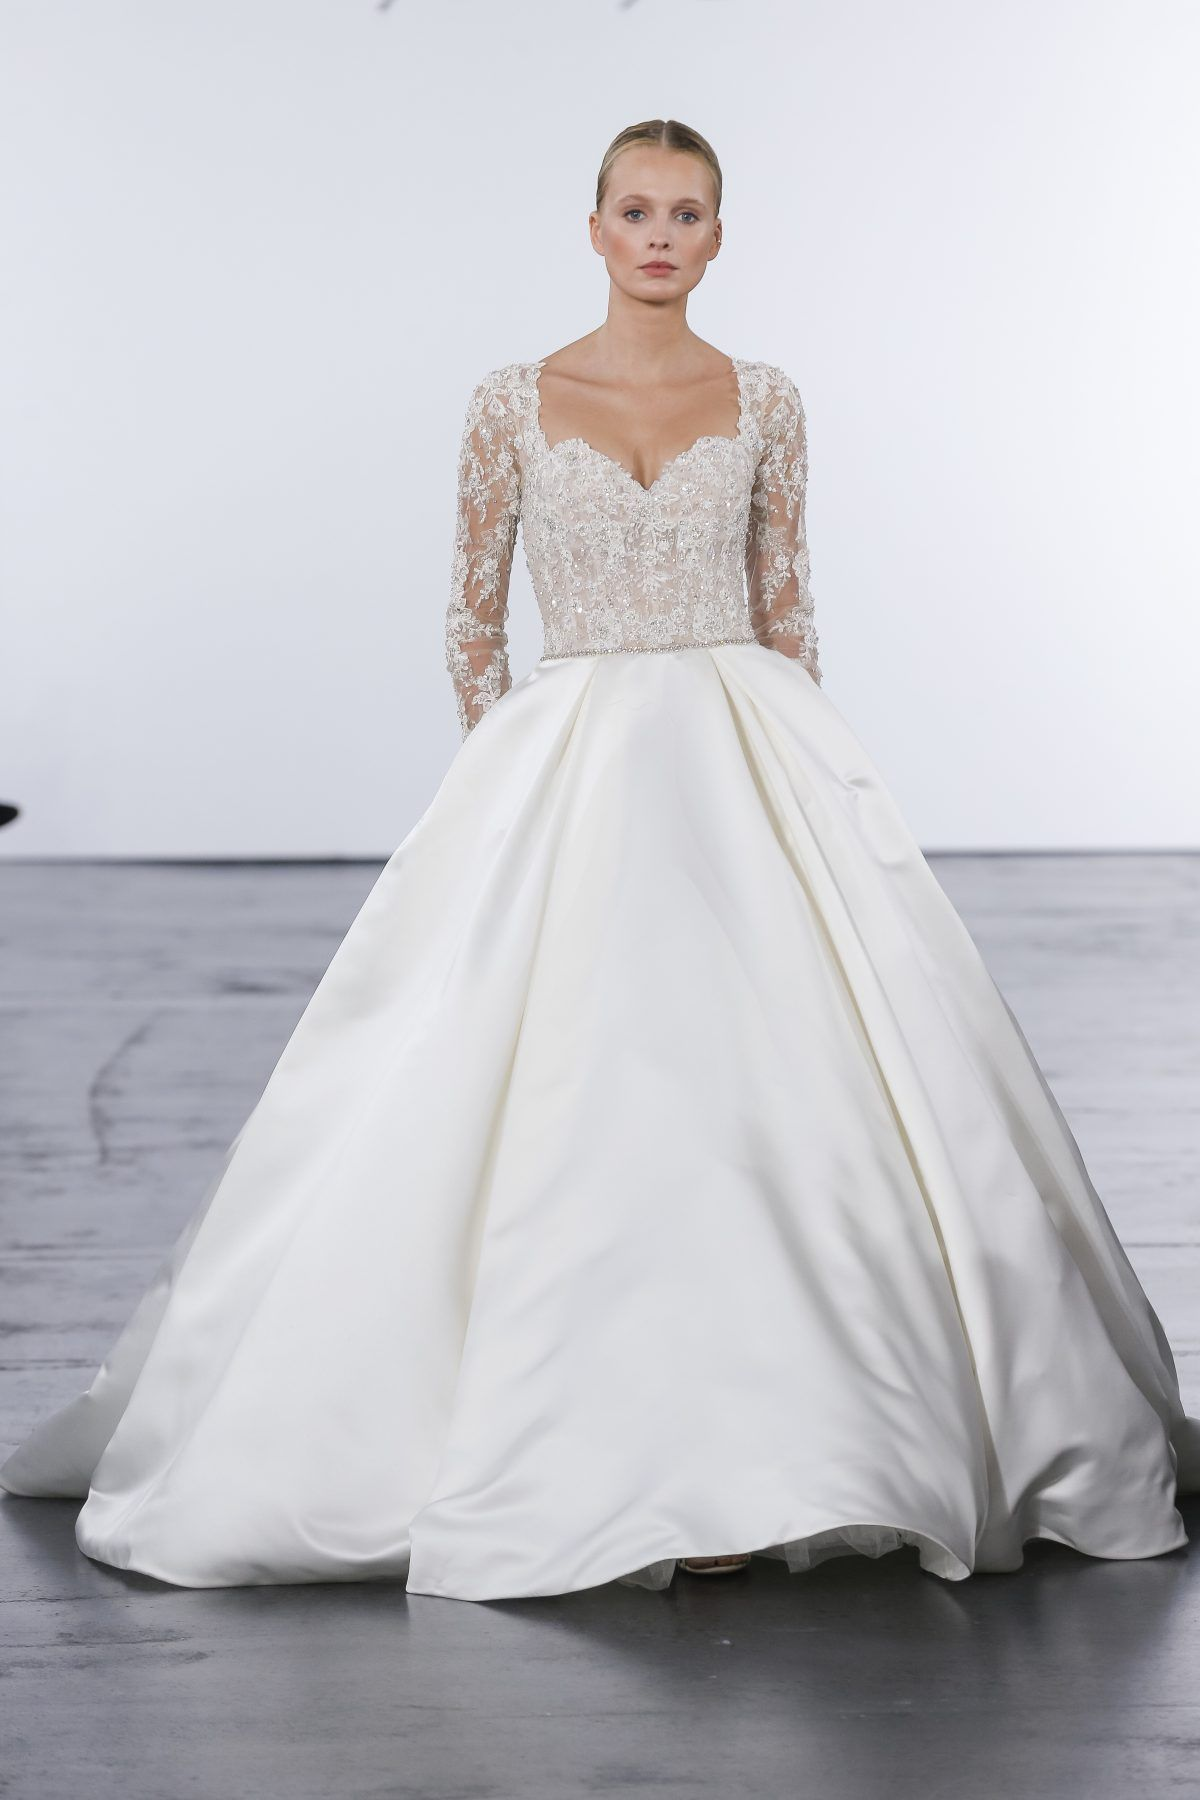 Modern ball gown wedding dress by dennis basso image wedding